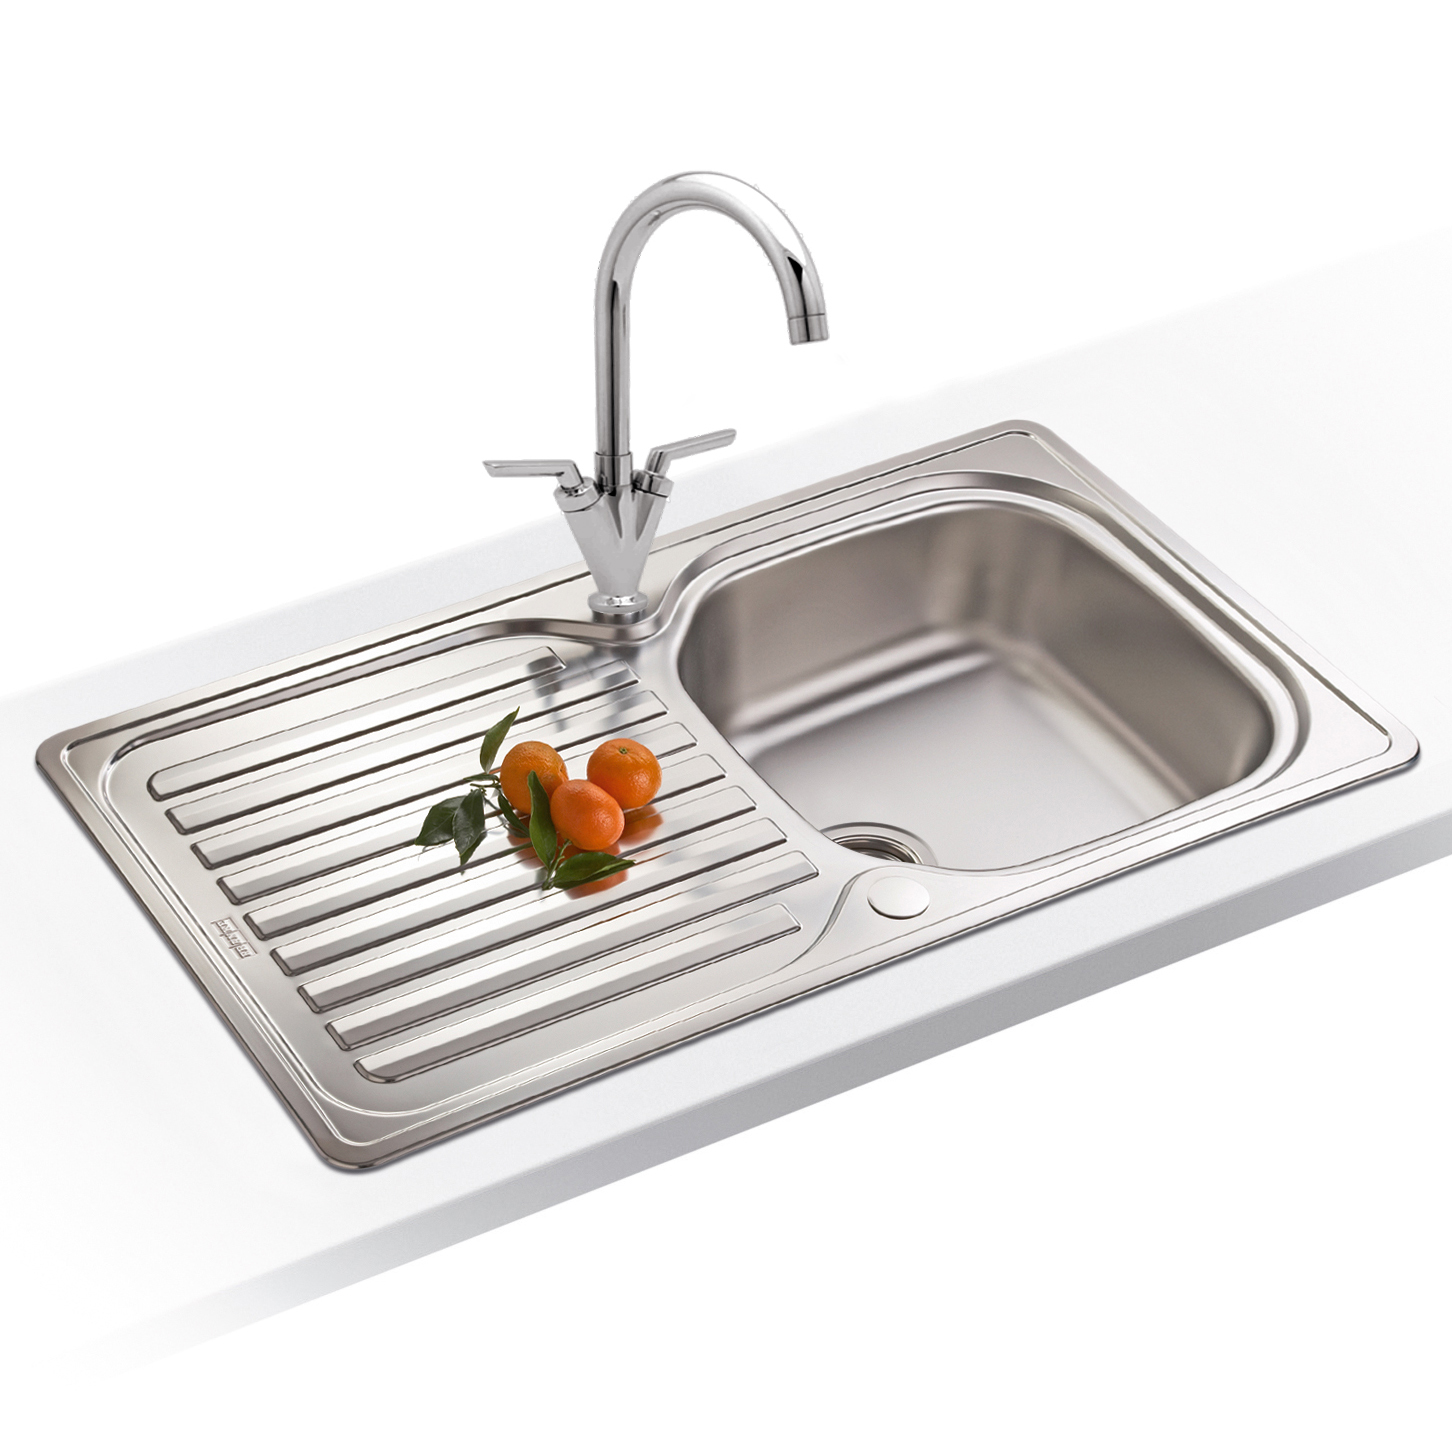 Franke Sinks And Taps : Taps UK - Franke Elba 1.0 Bowl Polished Stainless Steel Kitchen Sink ...